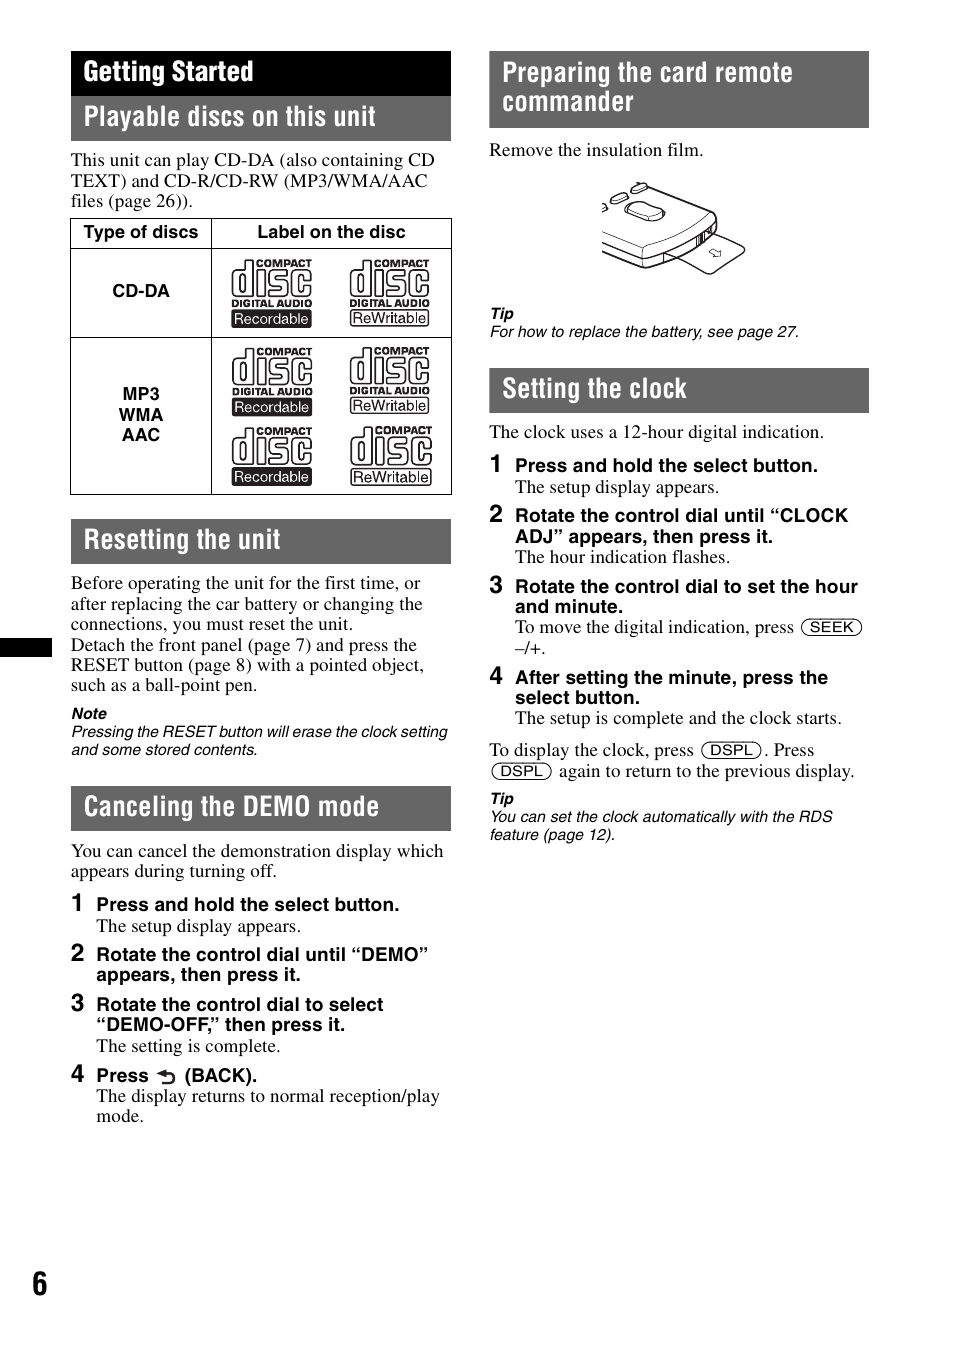 Getting started, Playable discs on this unit, Resetting the unit | Sony CDX- GT65UIW User Manual | Page 6 / 68